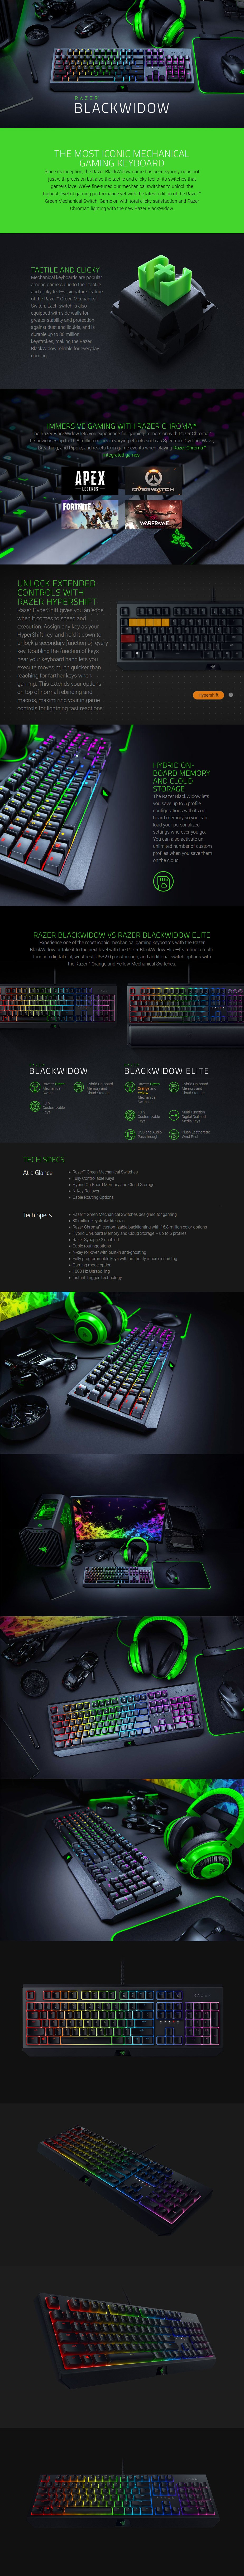 Razer BlackWidow 2019 Mechanical Gaming Keyboard - Green Switches - Overview 1